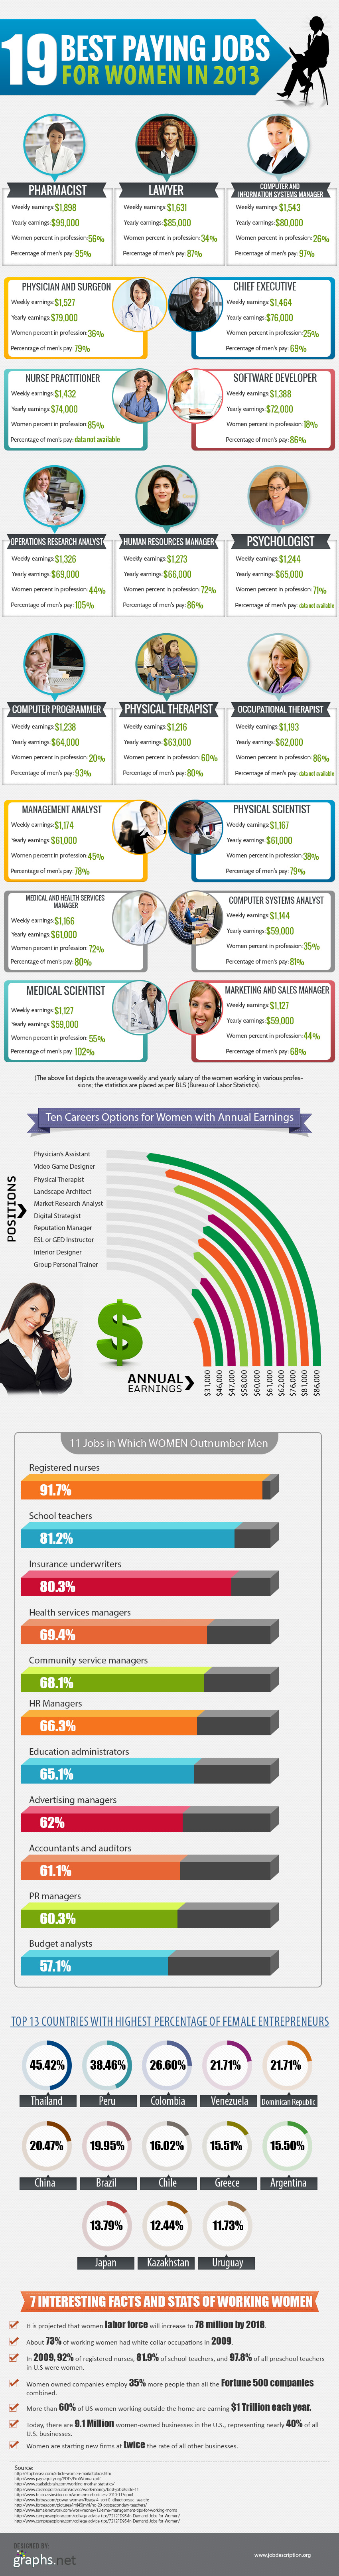 Best paying jobs for women to lookout in 2013